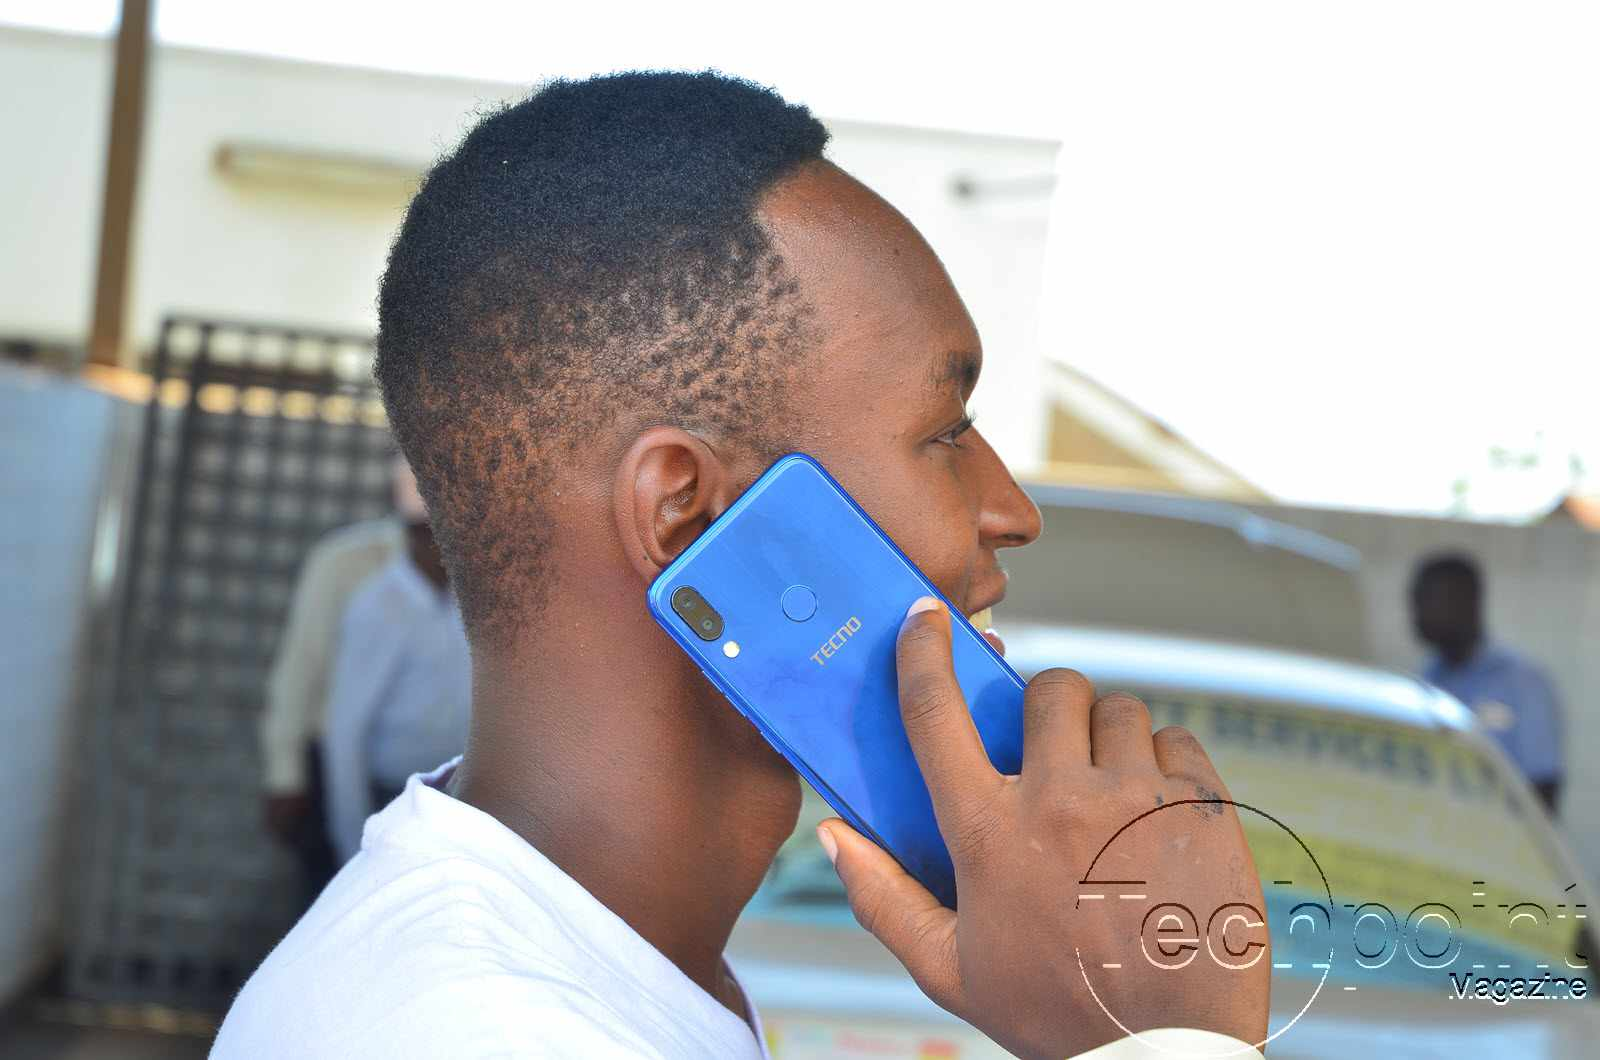 Uganda one rate for calls on any network